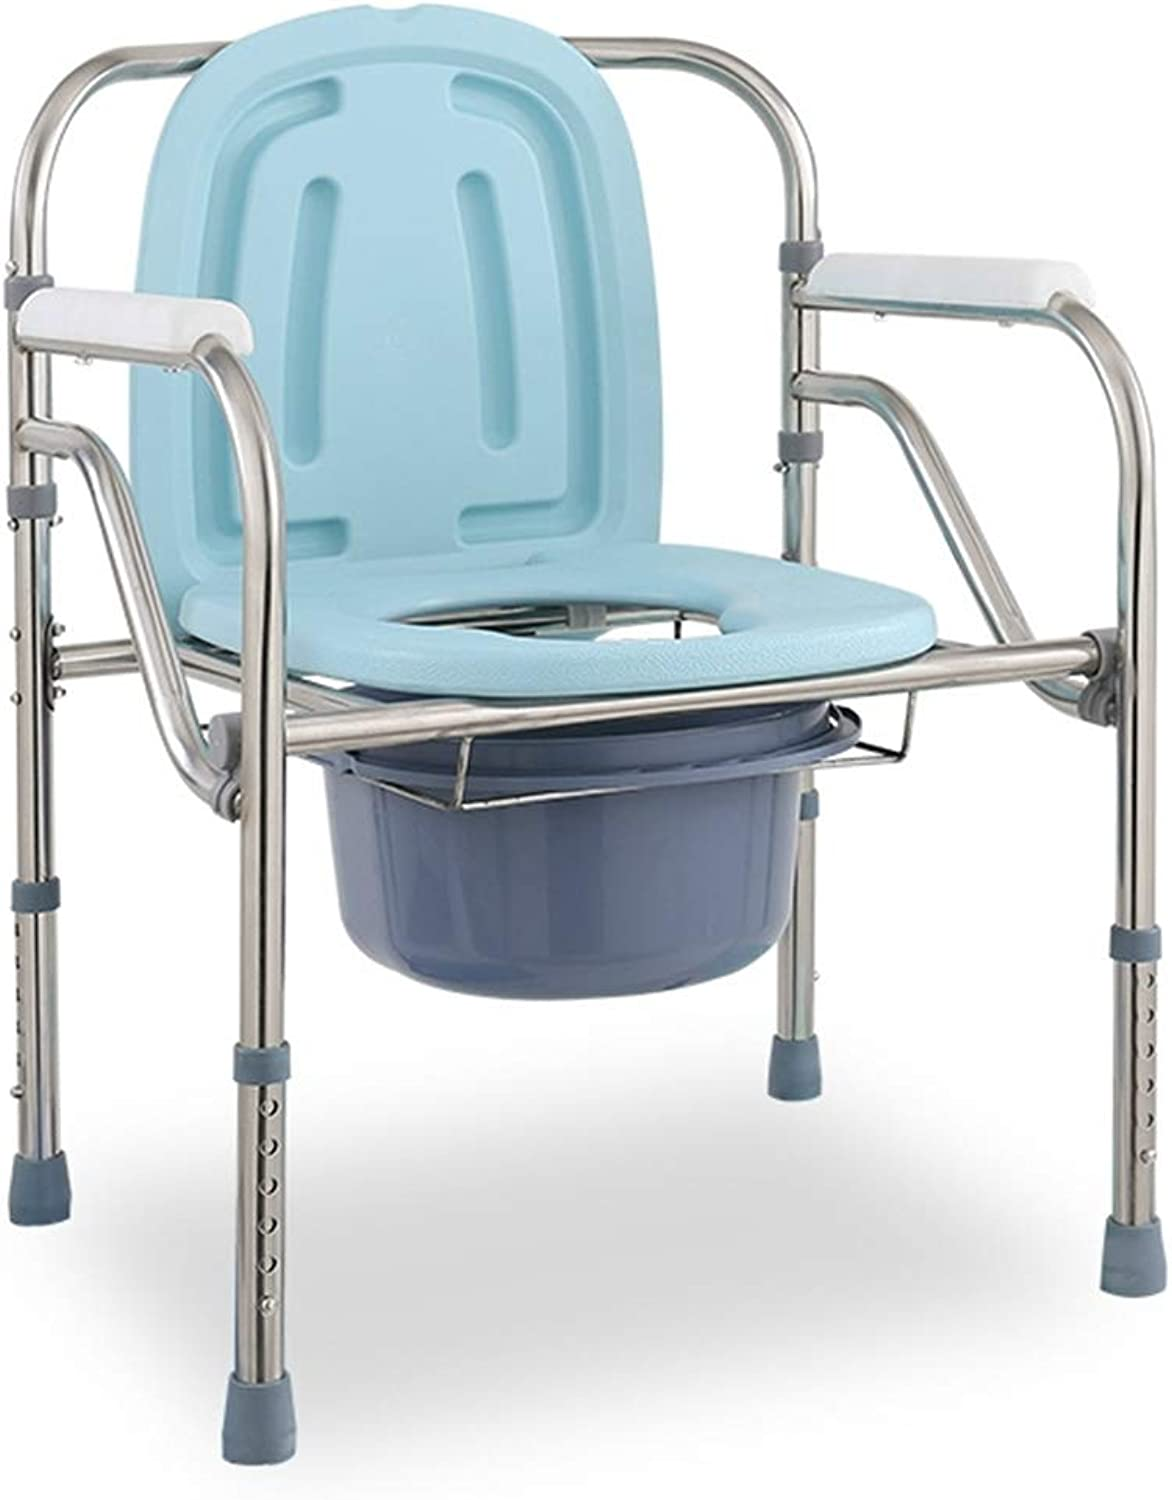 CAIJUN Chair Multifunction Stainless Steel Frame Foldable Assembly Waterproof Non-Slip, 5 Height Adjustments (color   bluee, Size   B)